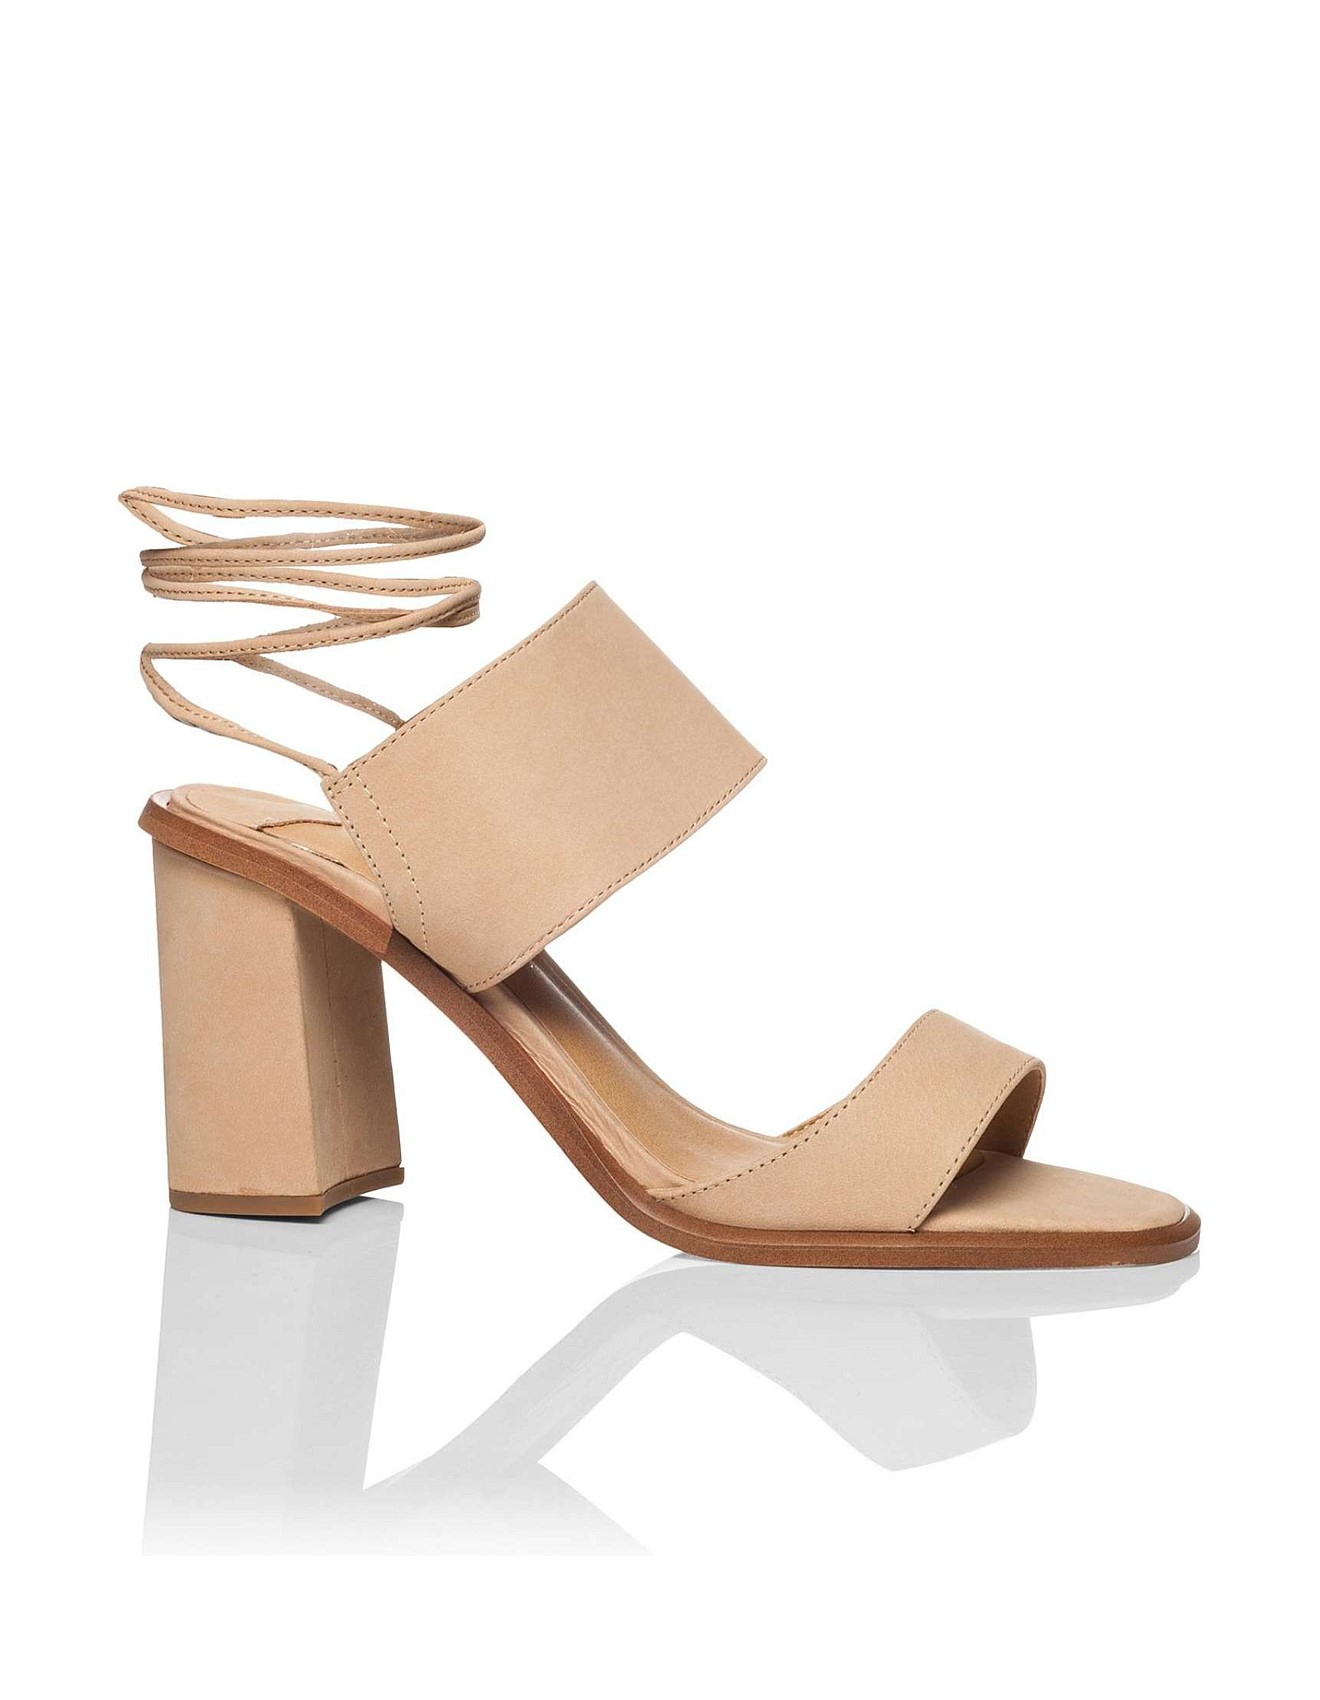 Cuoco High Heel Sandal With Ankle Lace